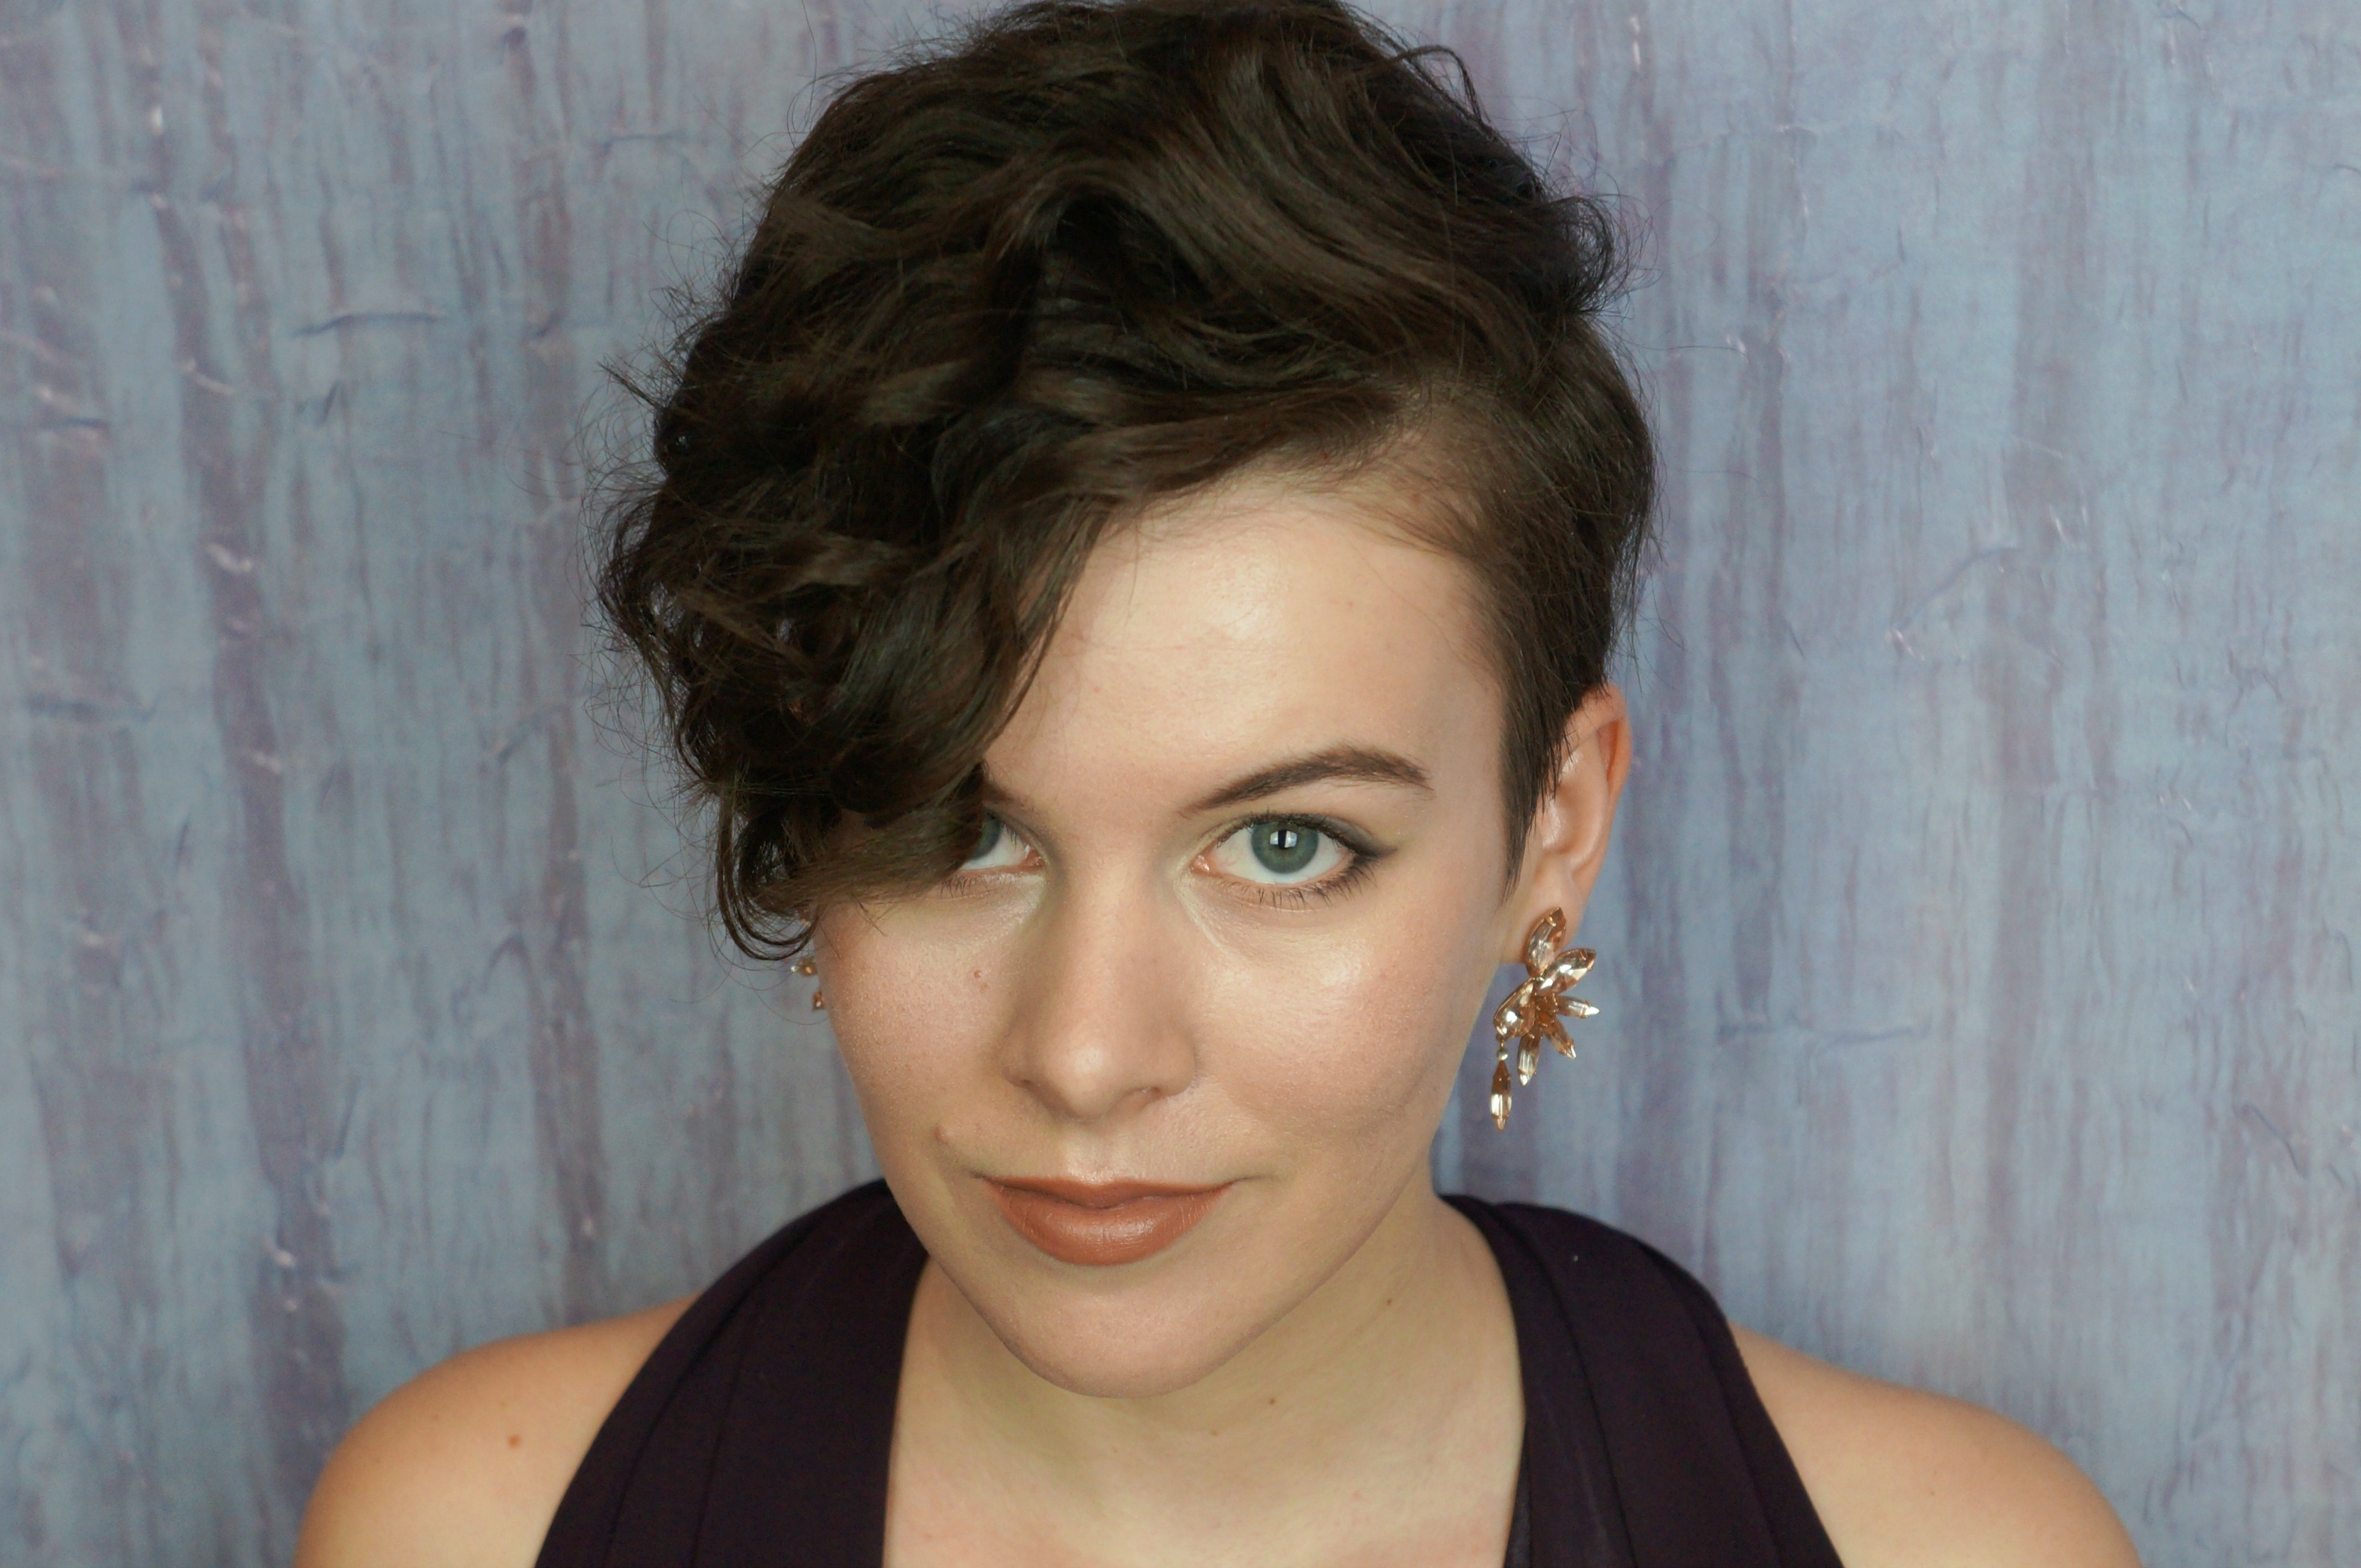 4 Short Hairstyles For Prom That Prove Pixie Cuts Can Be Extremely Glam Regarding Messy Pixie Hairstyles For Short Hair (View 7 of 20)